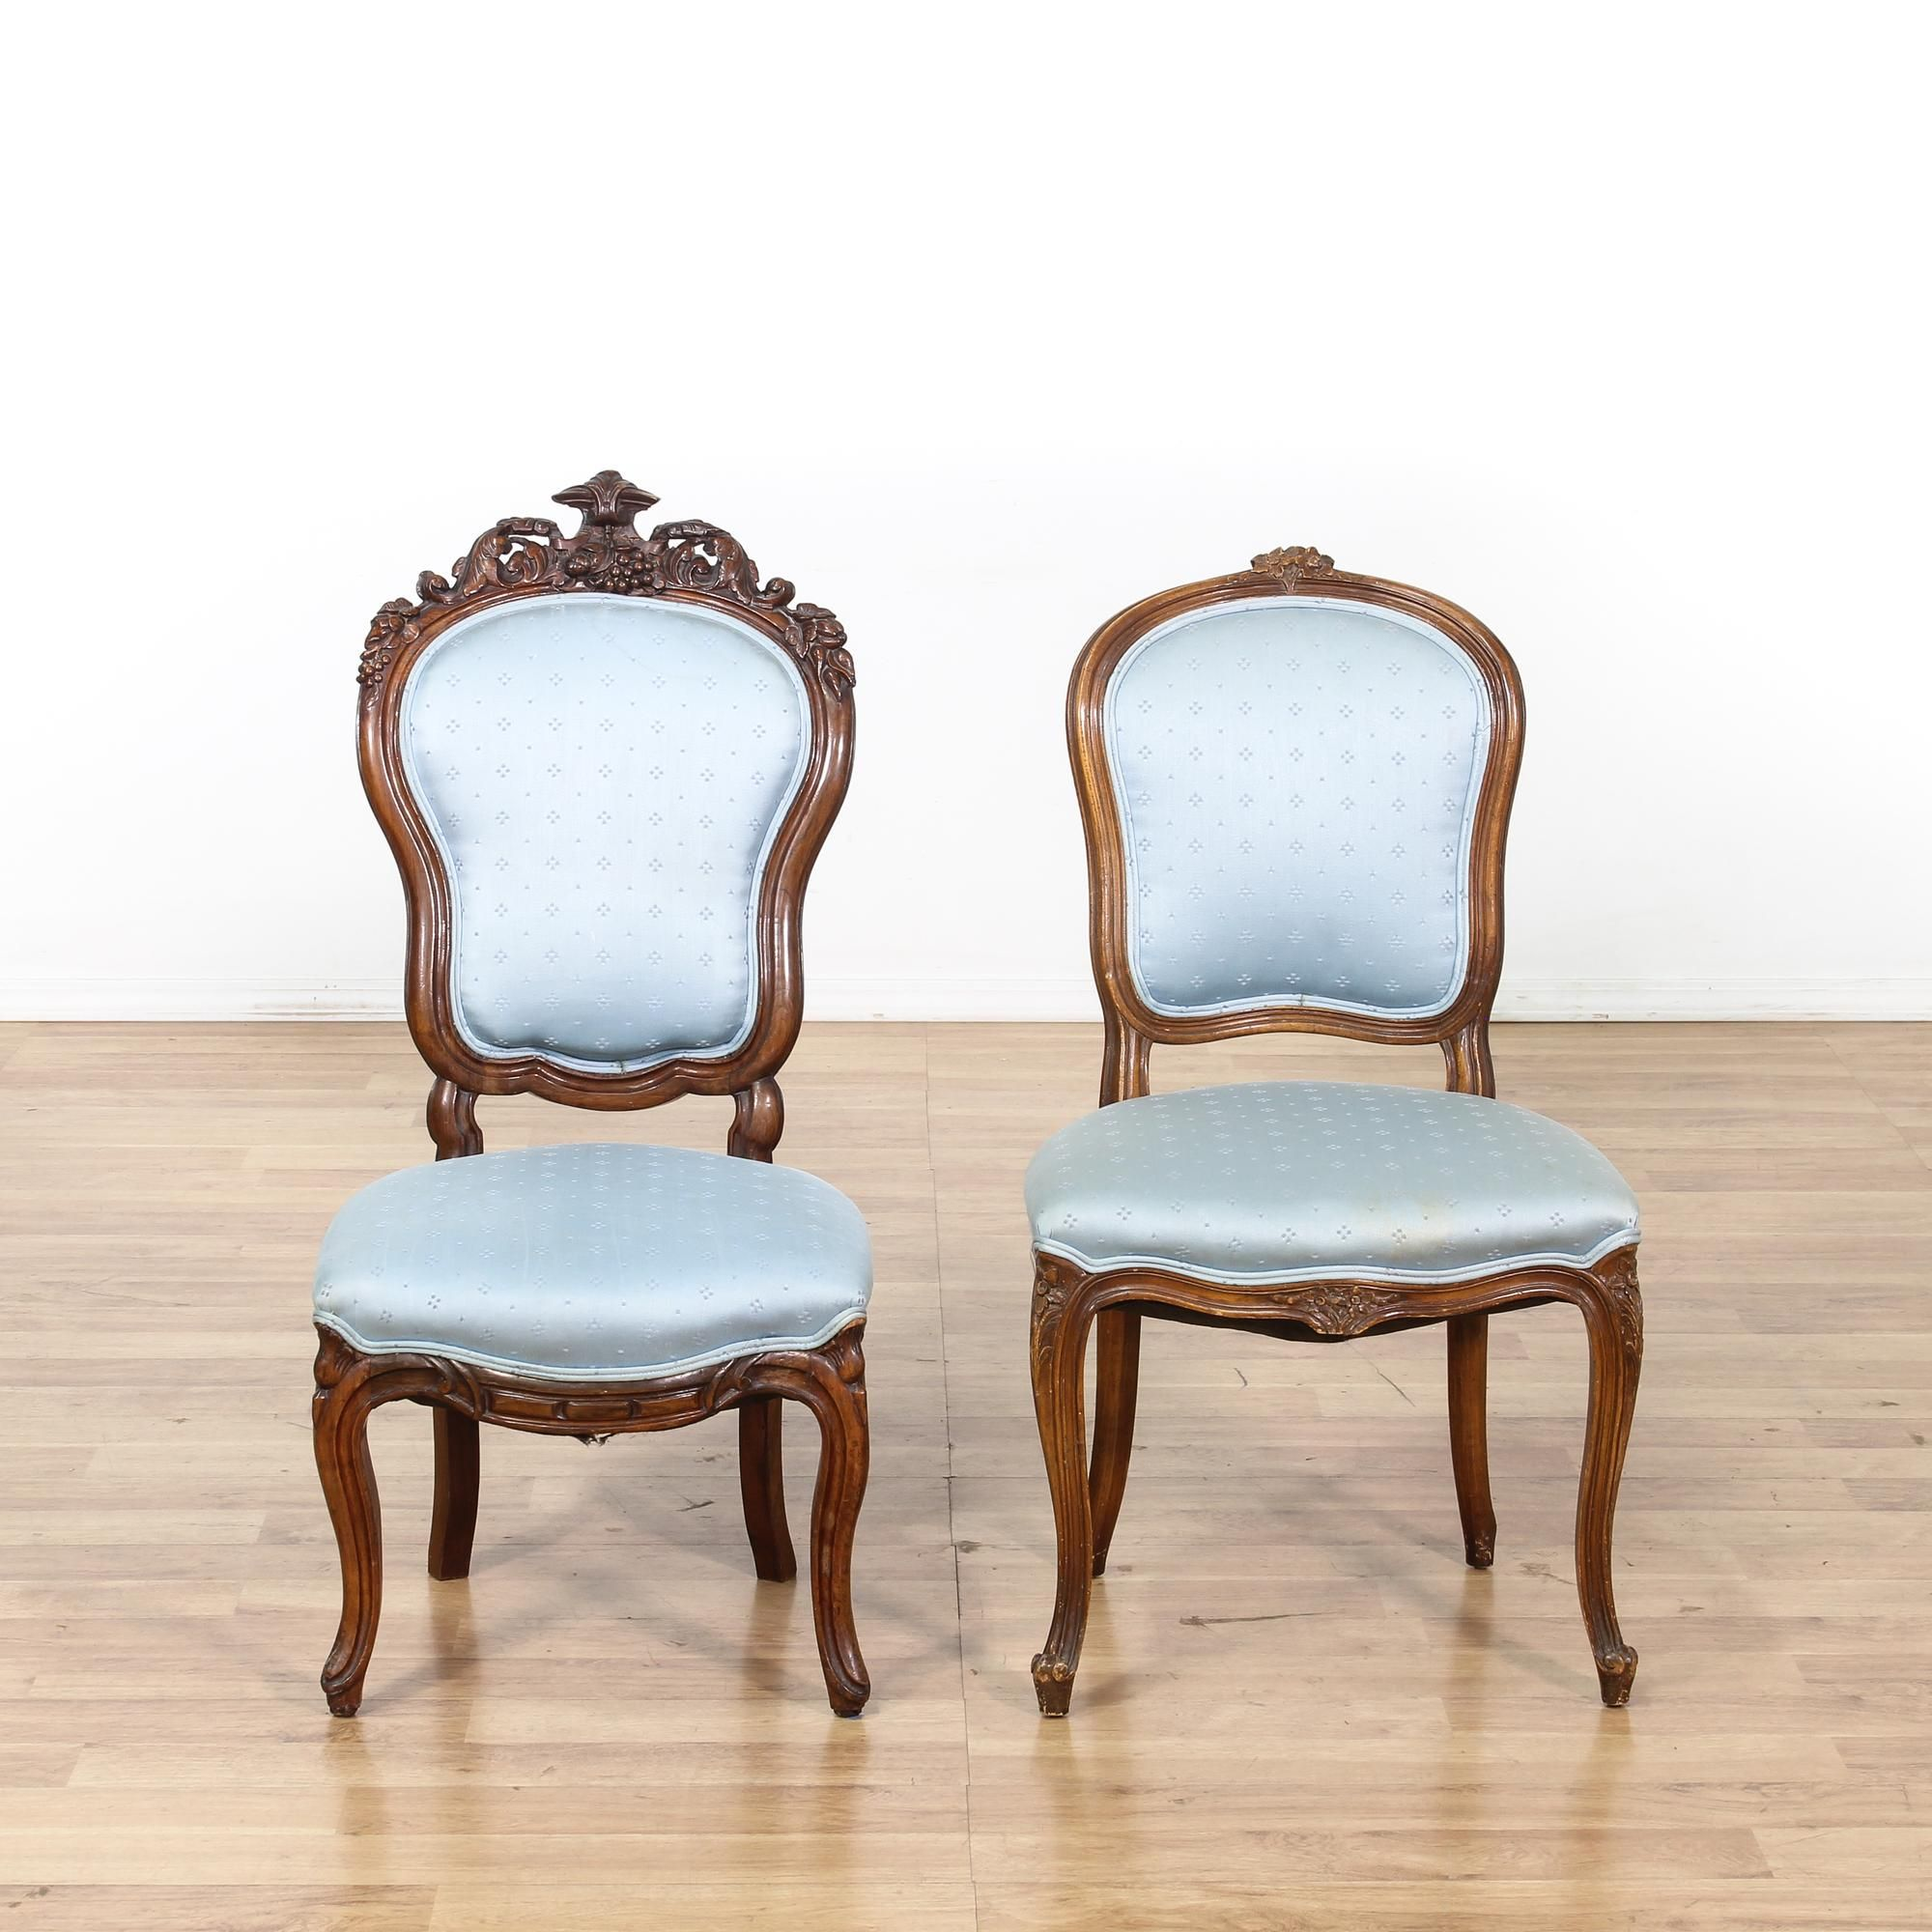 This Pair Of Accent Chairs Is Featured In A Solid